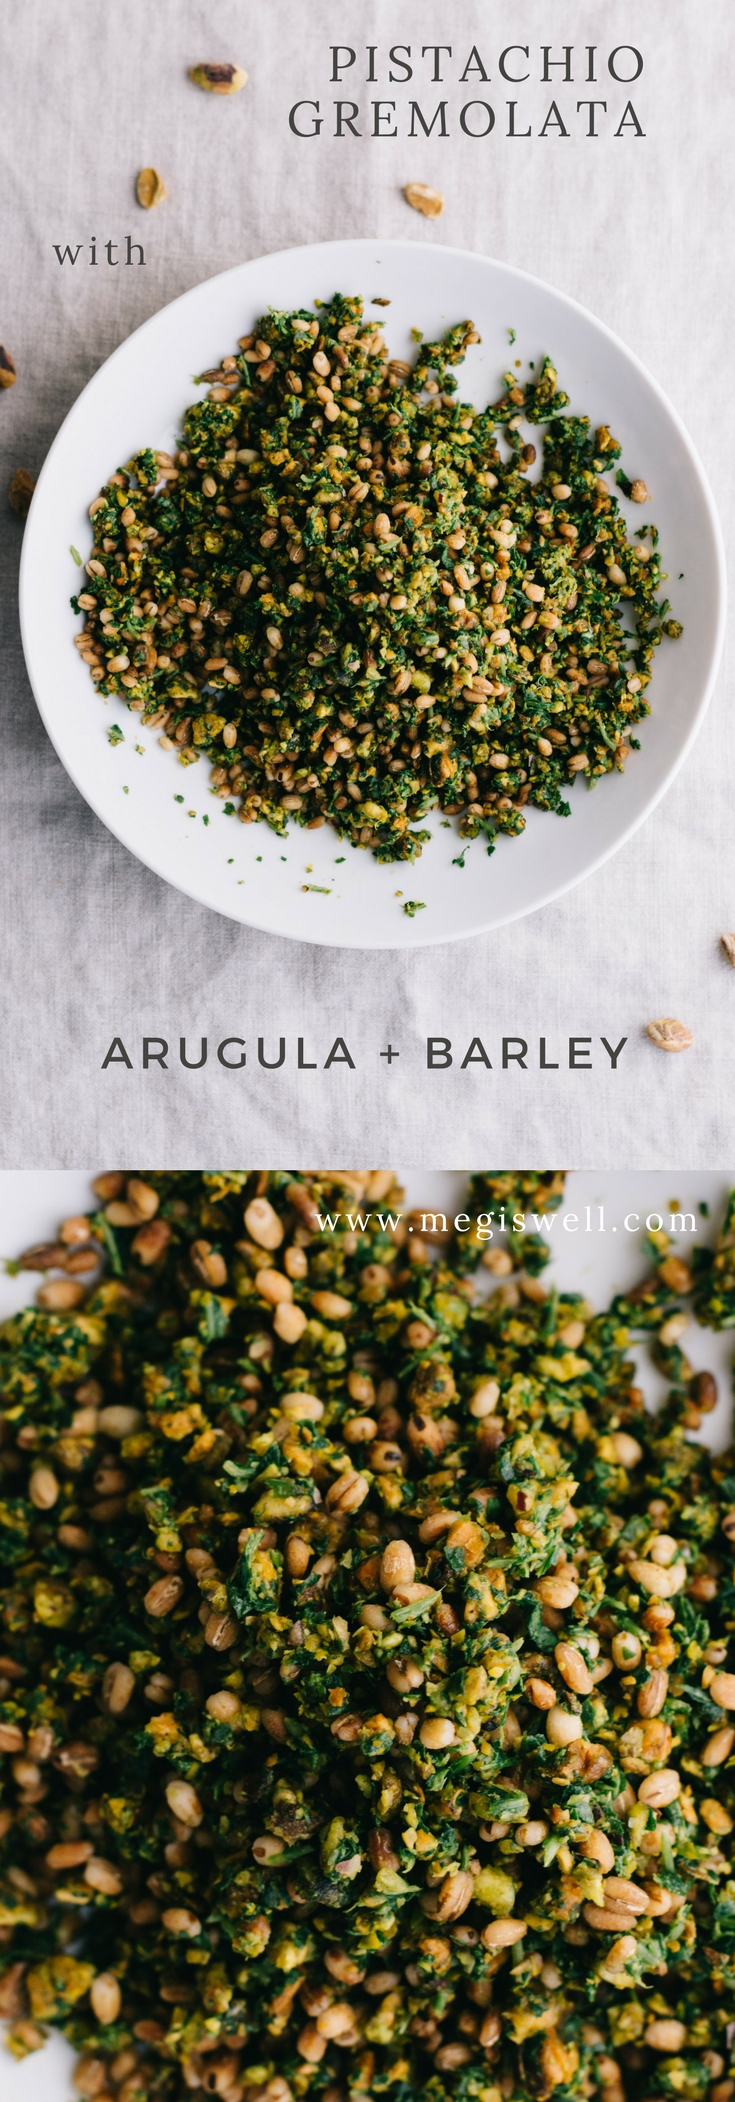 This Pistachio Gremolata with Arugula is a great fresh side or condiment to pair with protein or other veggies to brighten up your meal. Add barley to make it a fast more filling main dish. #healthy #salad #side #condiment | www.megiswell.com